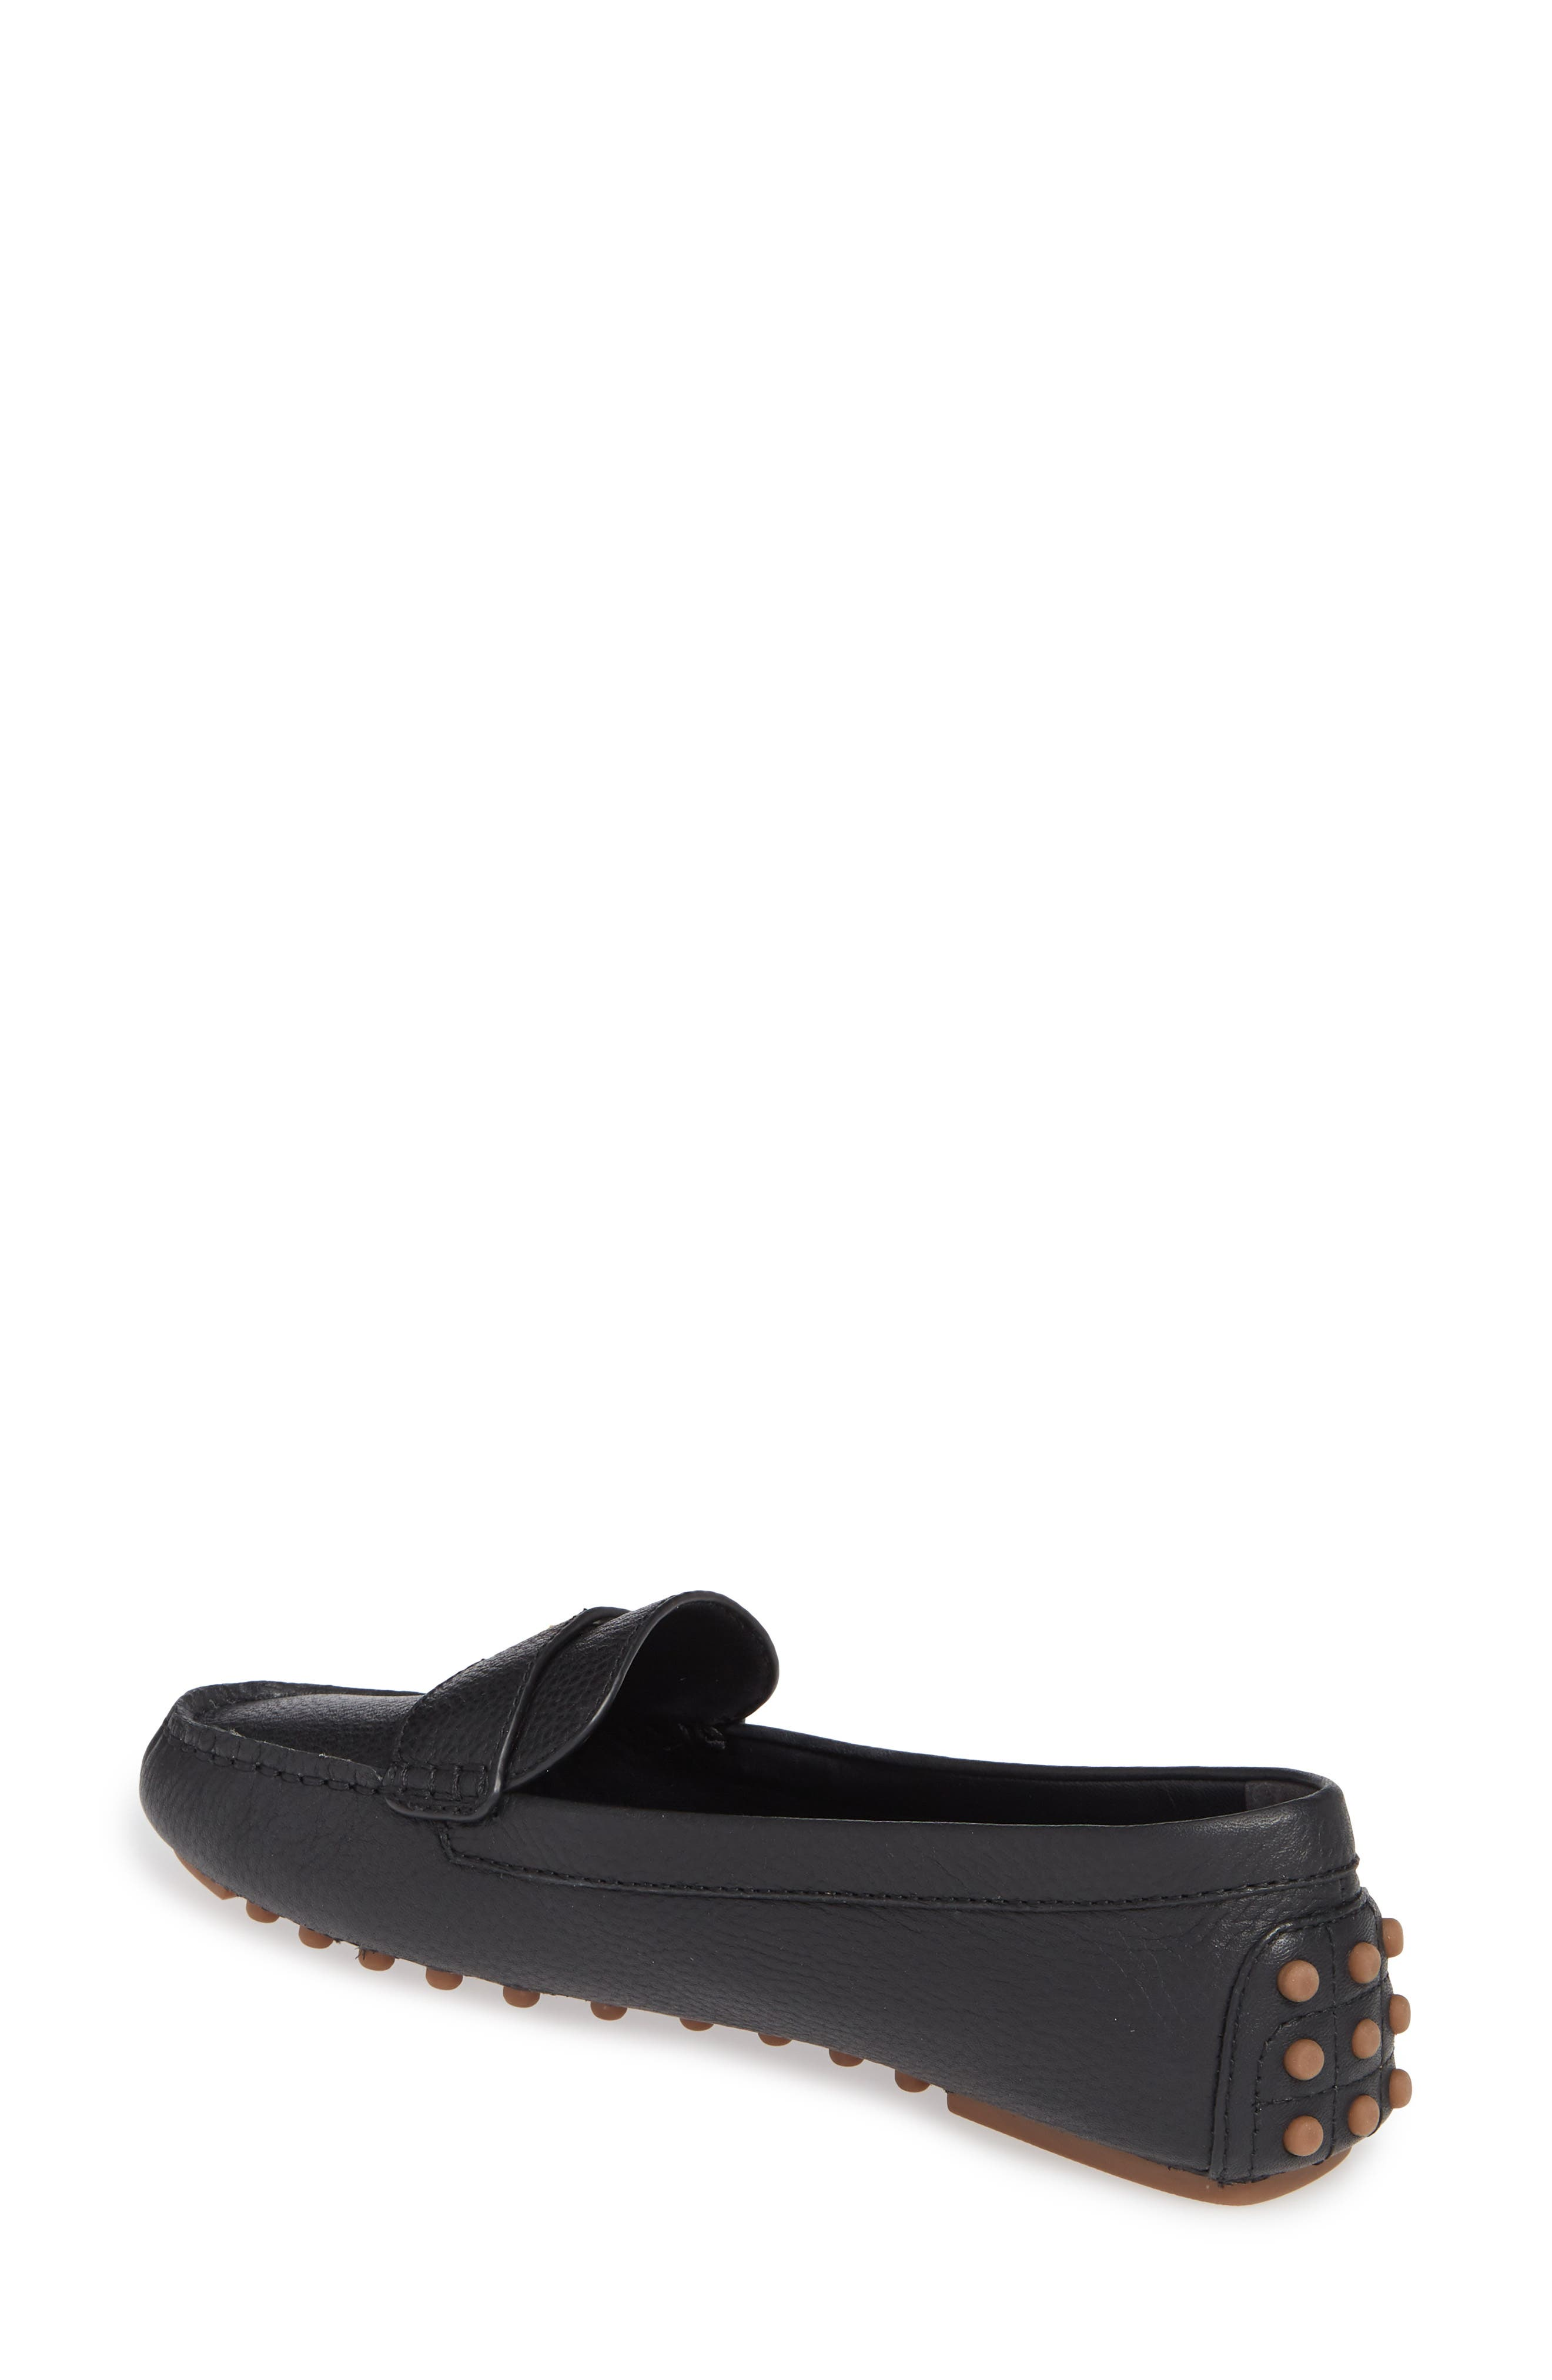 TORY BURCH, Kira Driving Loafer, Alternate thumbnail 2, color, PERFECT BLACK